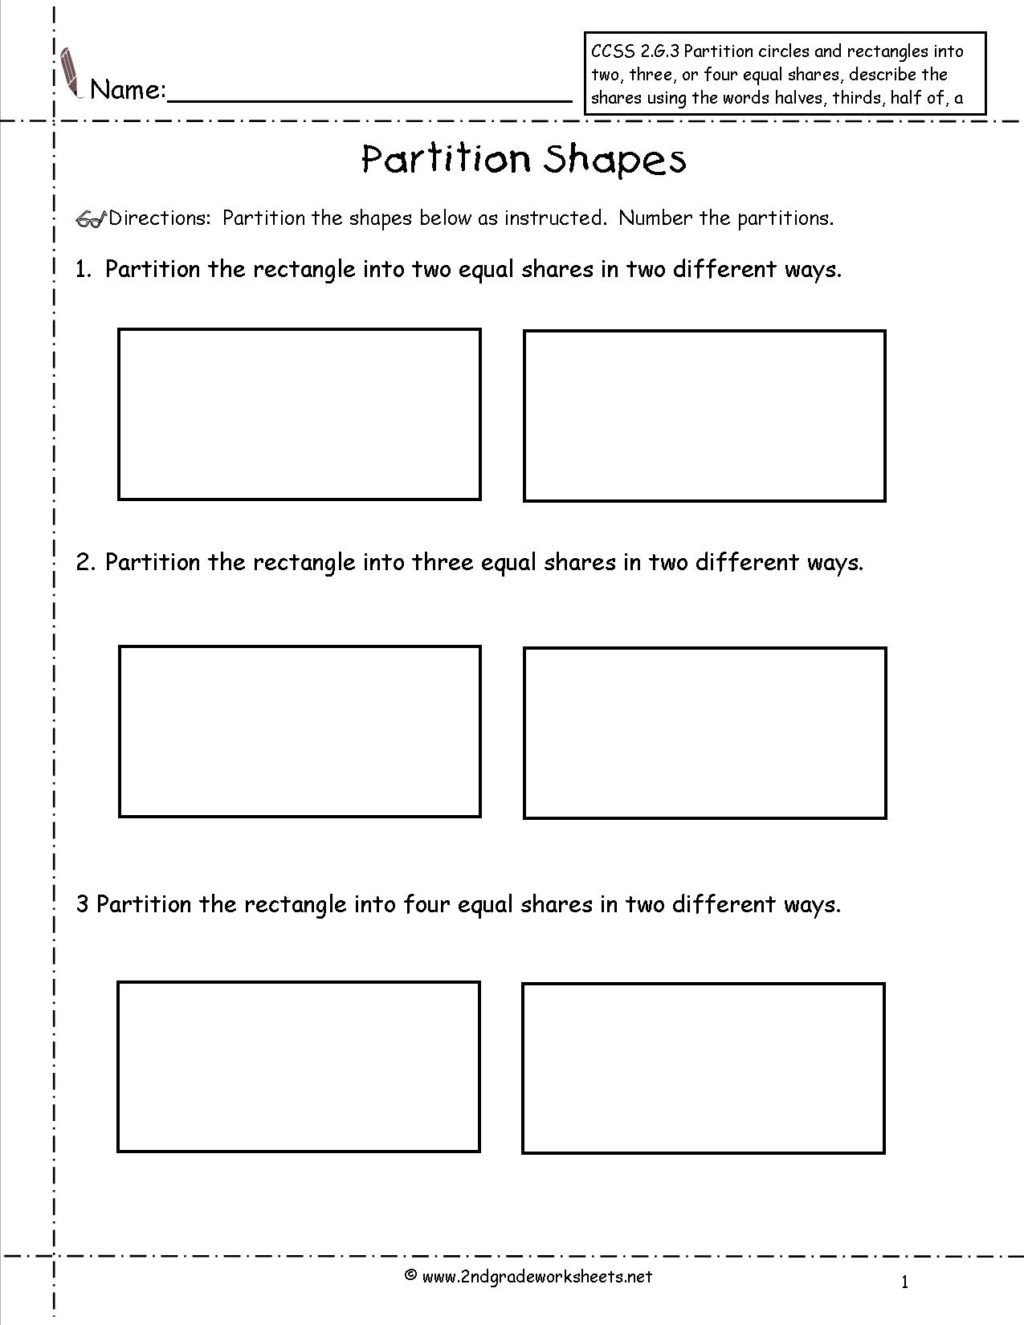 Polygon Worksheets for 2nd Grade Worksheet 2nd Grade Geometry Worksheets Ccss G Partition